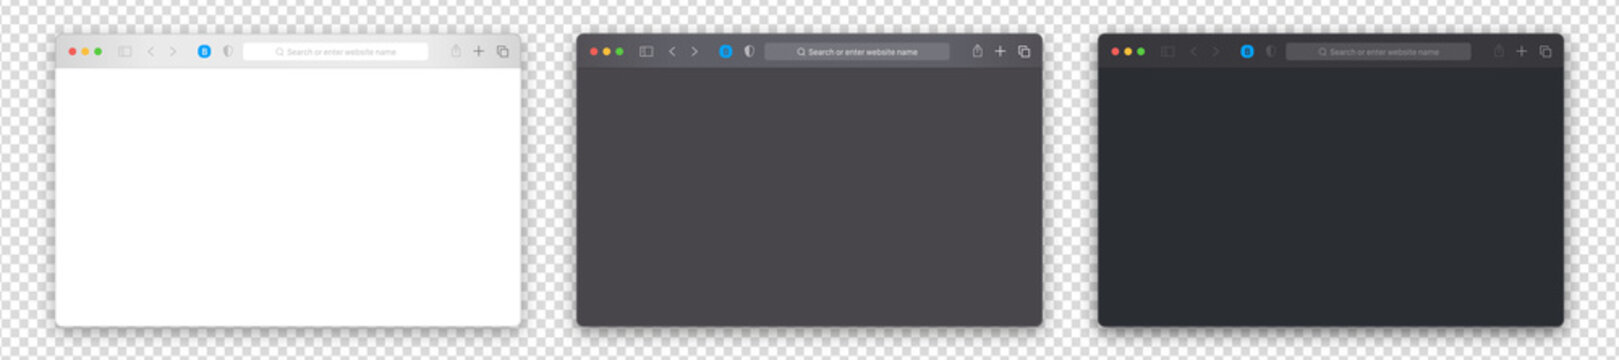 Browser window vector set. Isolated computer browser template on alpha background. Blank browser page mockup. For laptop, computer, monitor, tablet device. White, gray, black design. Realistic UI elem